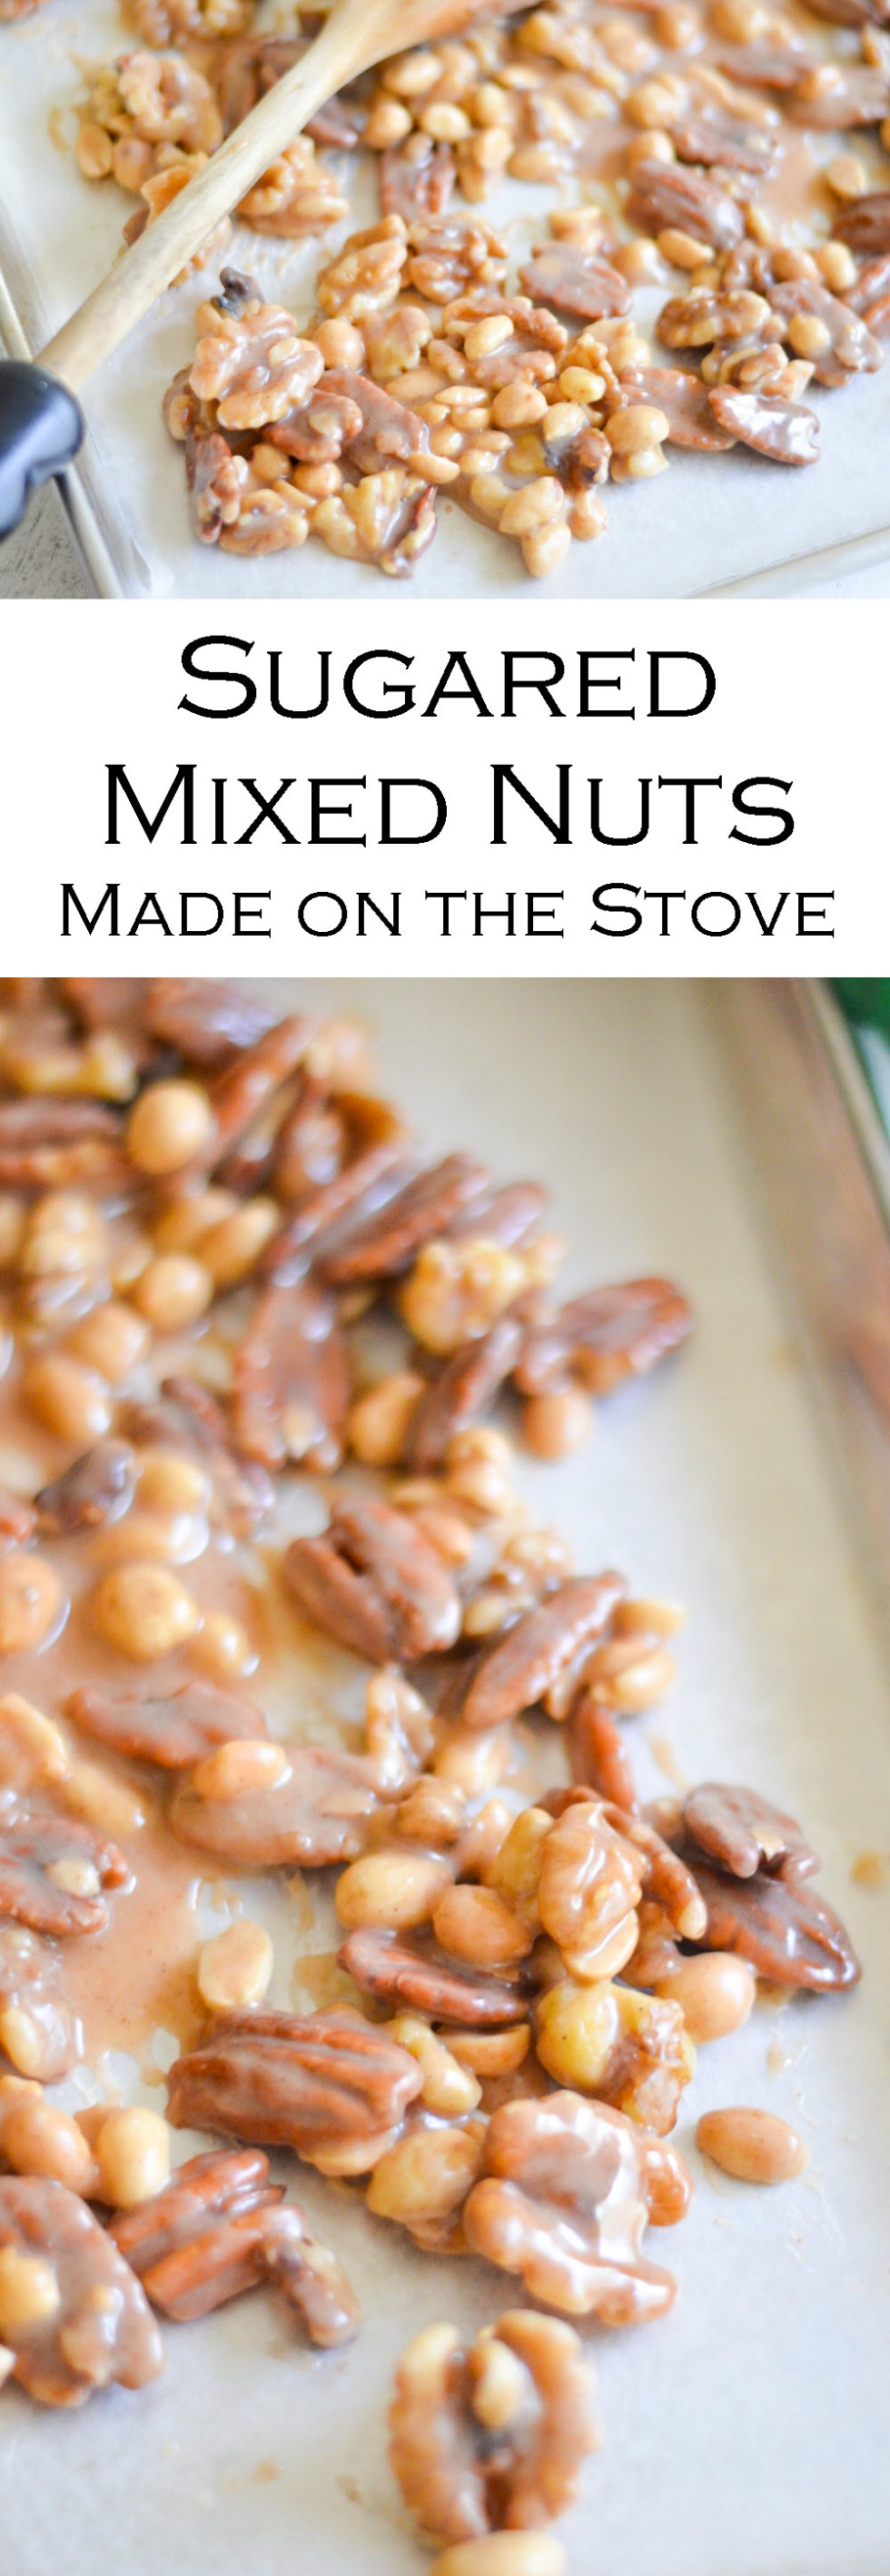 Sugared Mixed Nuts on Stovetop